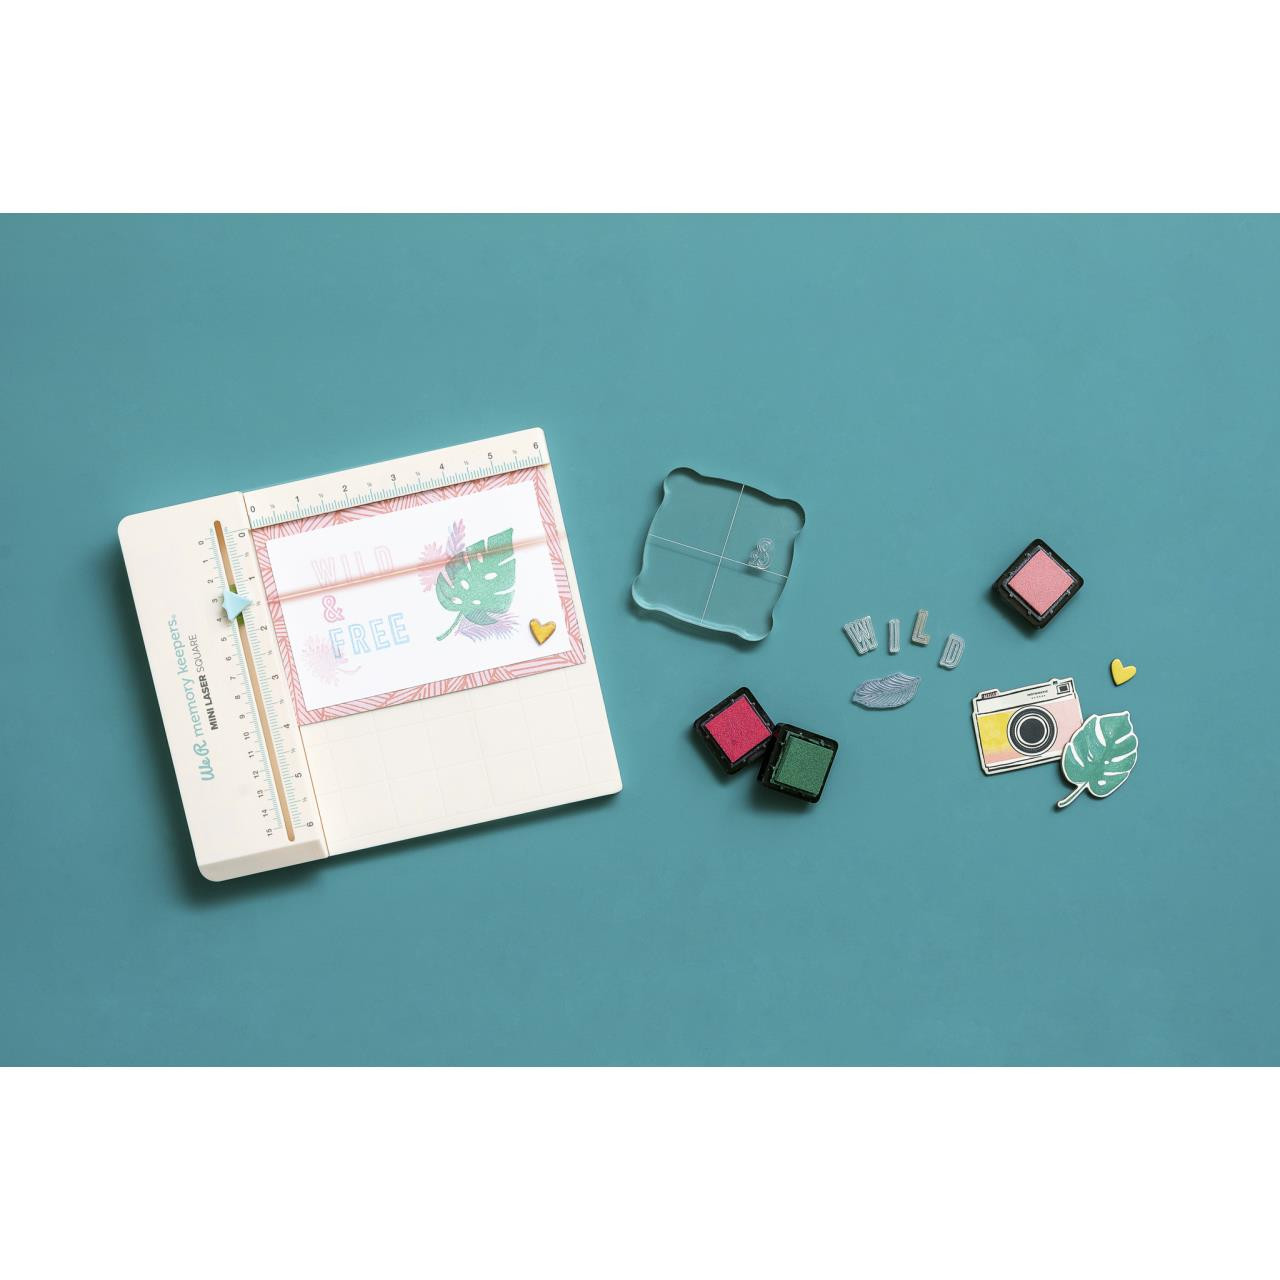 We R Memory Keepers Mini Laser Square - 633356606246